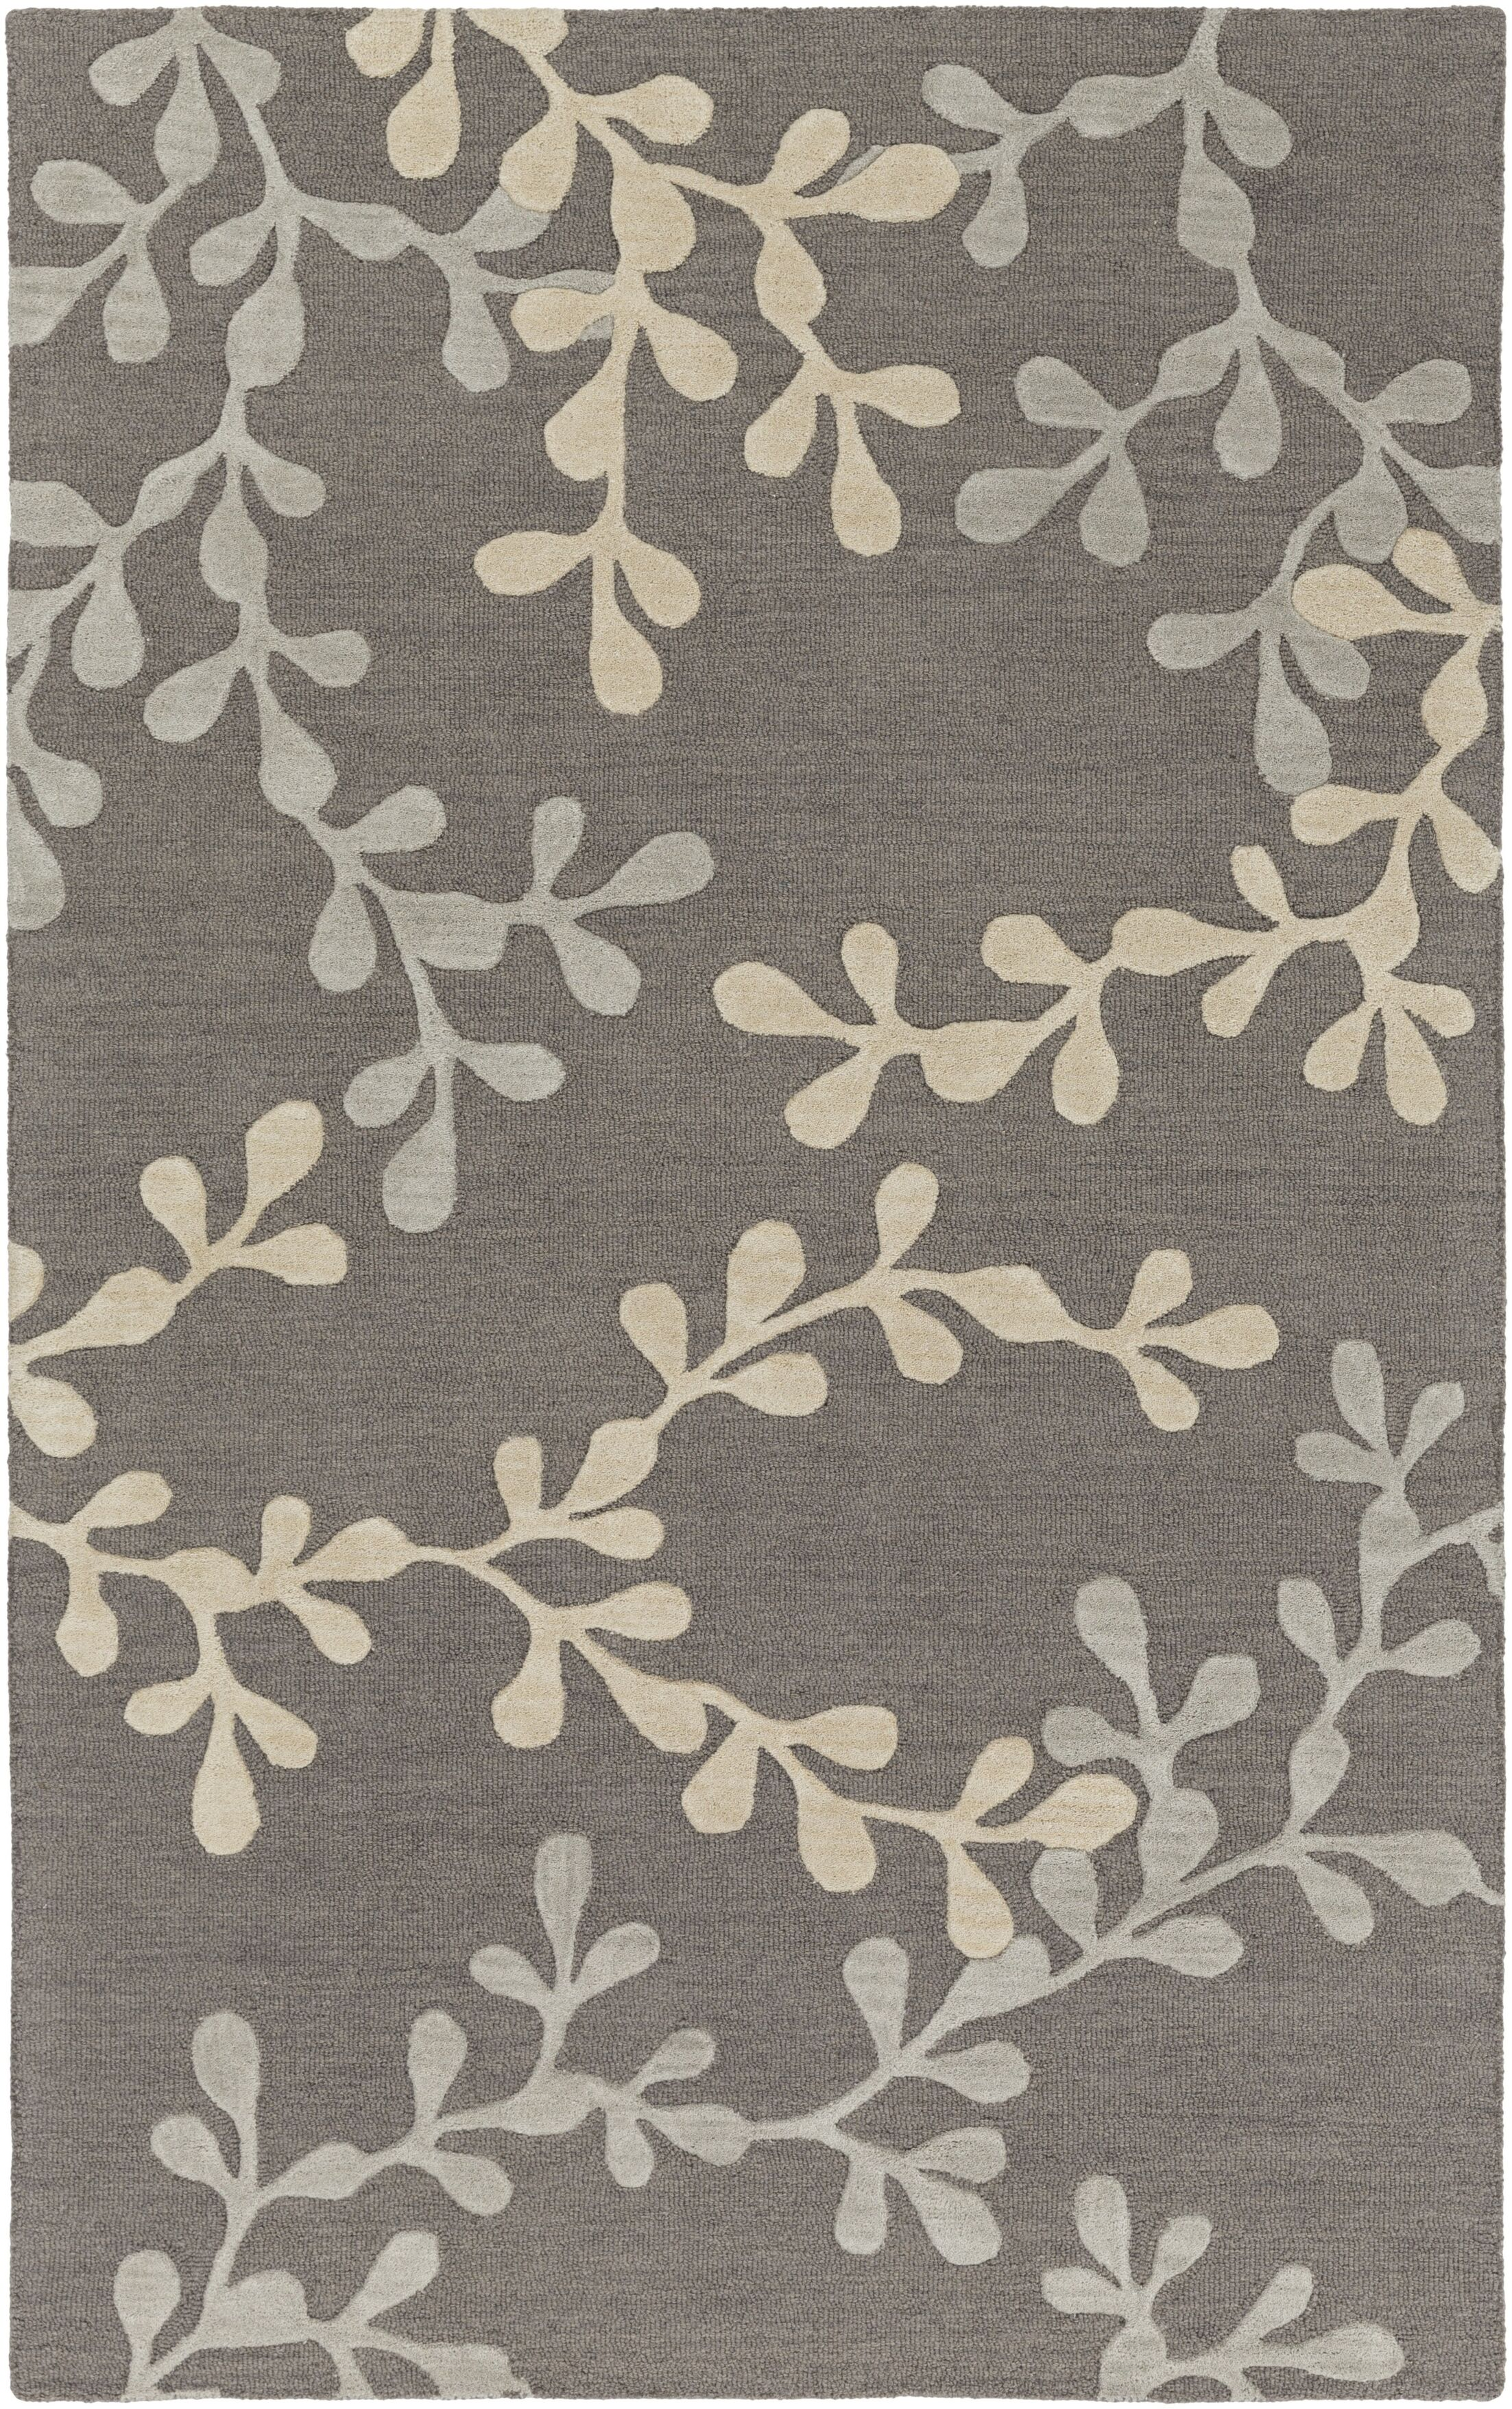 Coutu Hand-Tufted Pewter/Slate Area Rug Rug Size: Rectangle 5' x 8'